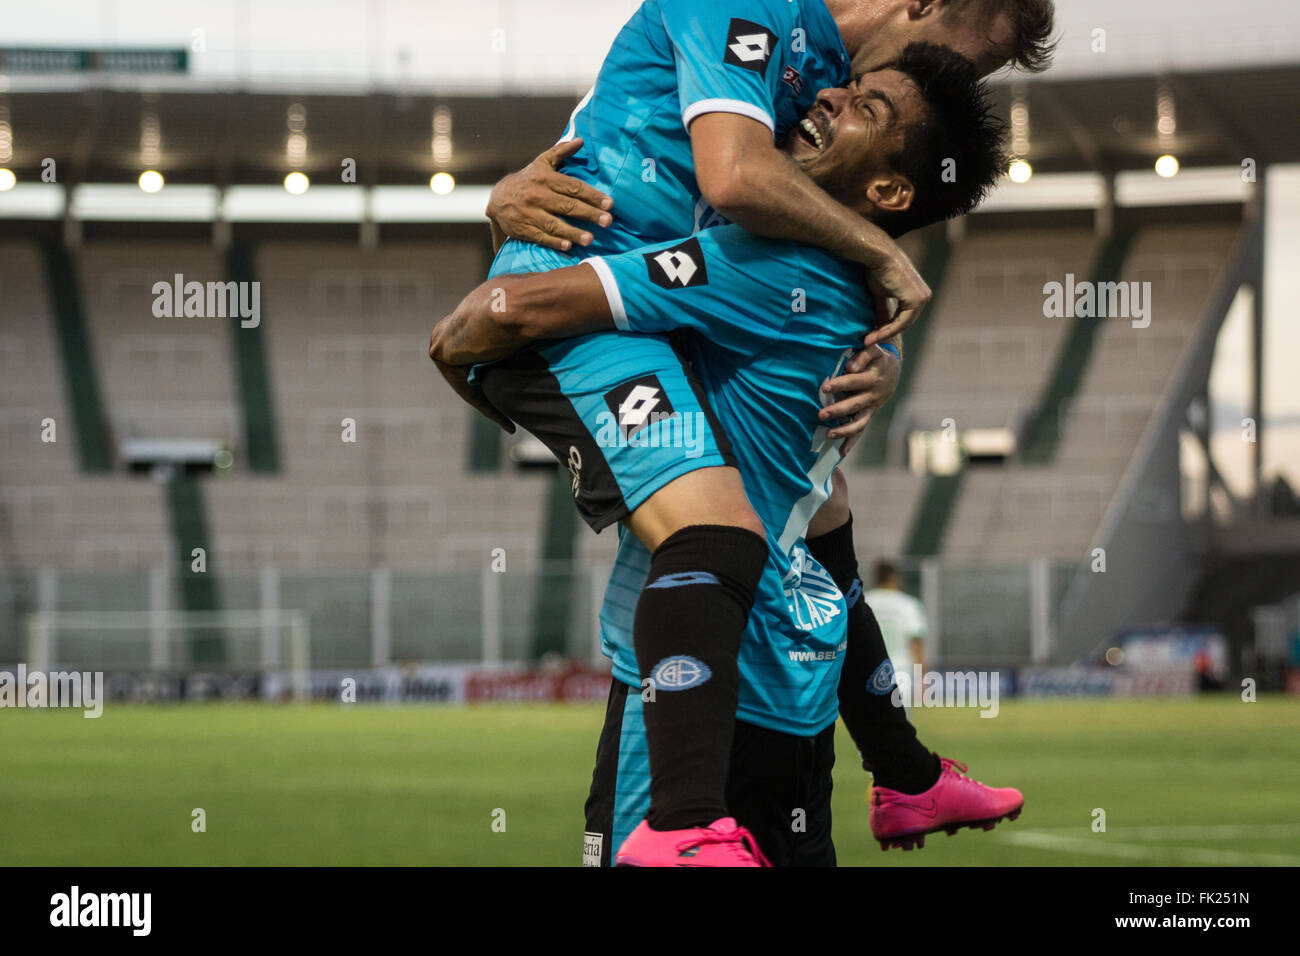 Cordoba, Argentina. 5th March, 2016. Celebration for the goal Belgrano Soccer Team, during a match between Belgrano - Stock Image